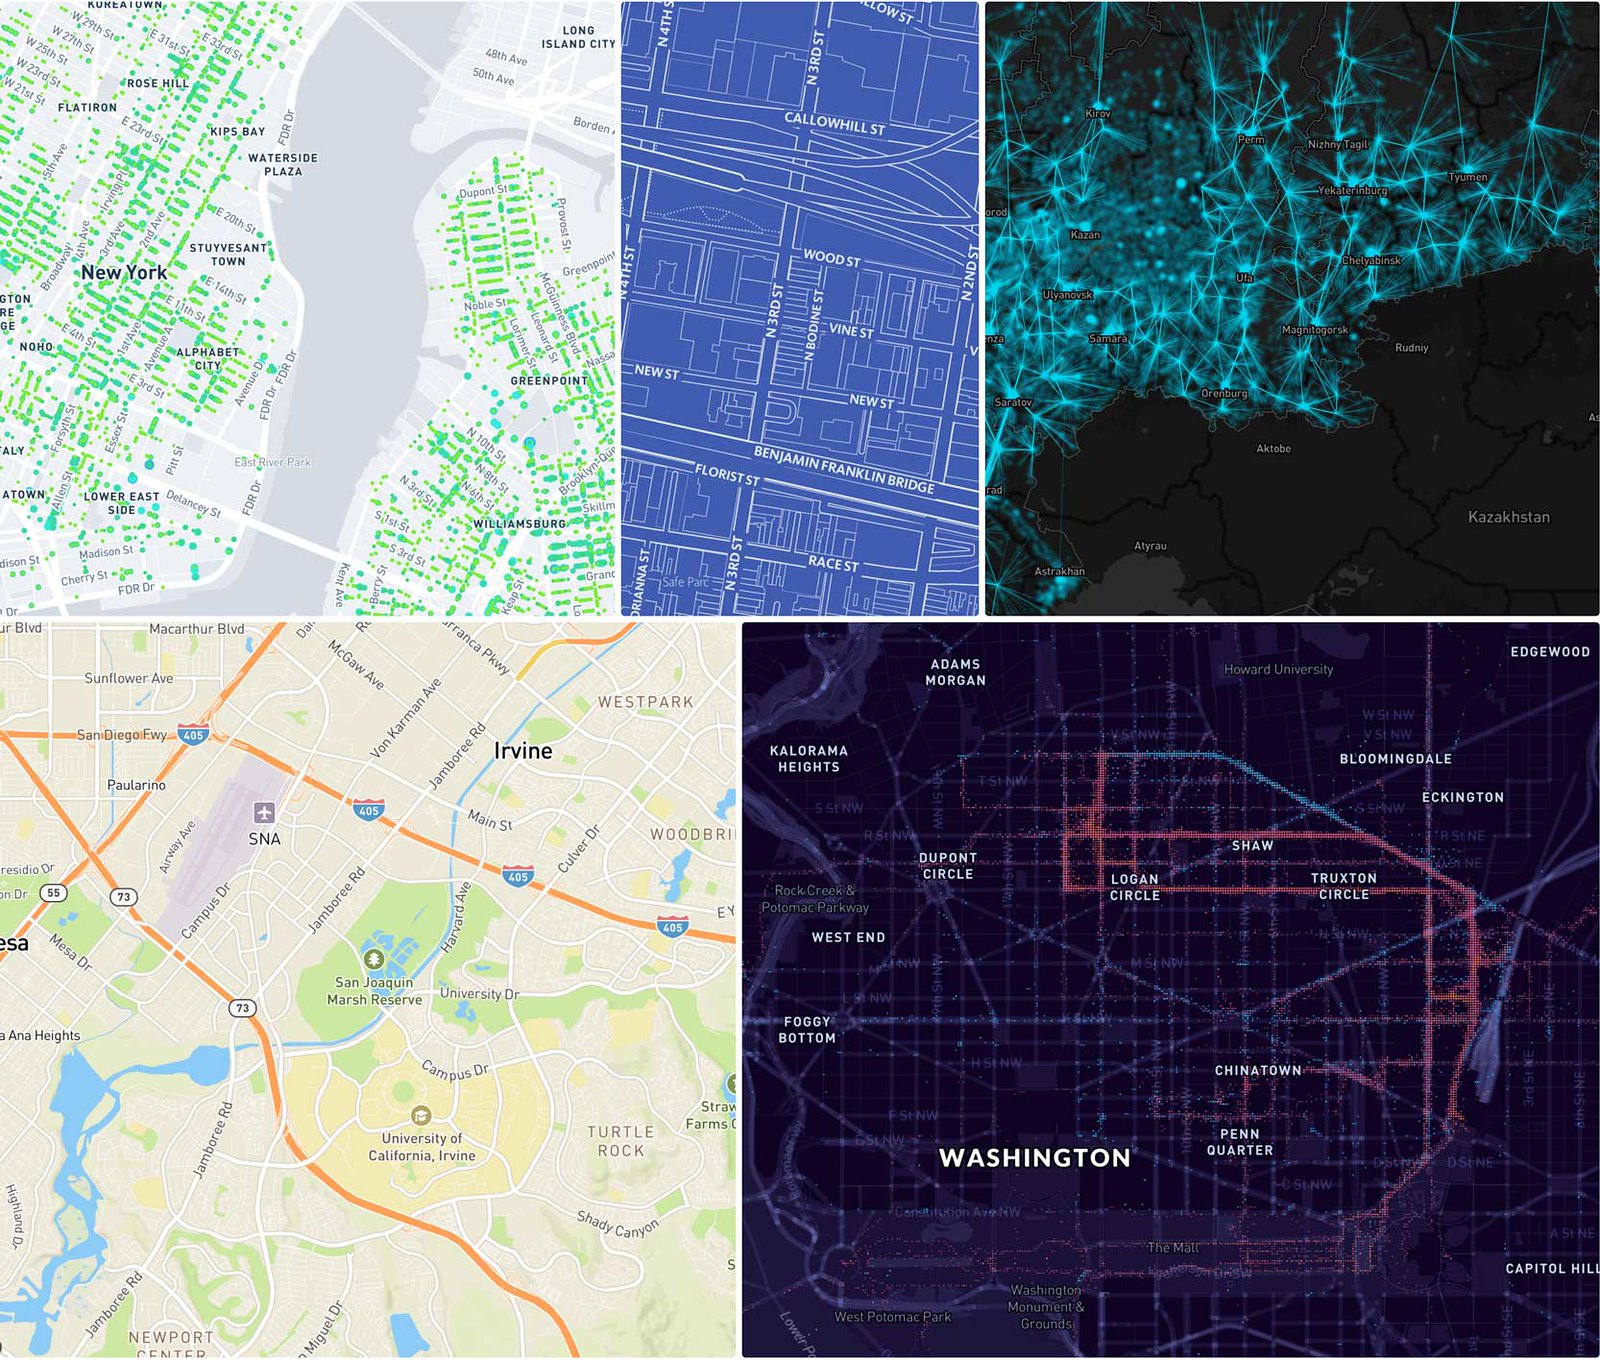 Gallery mapbox gumiabroncs Choice Image